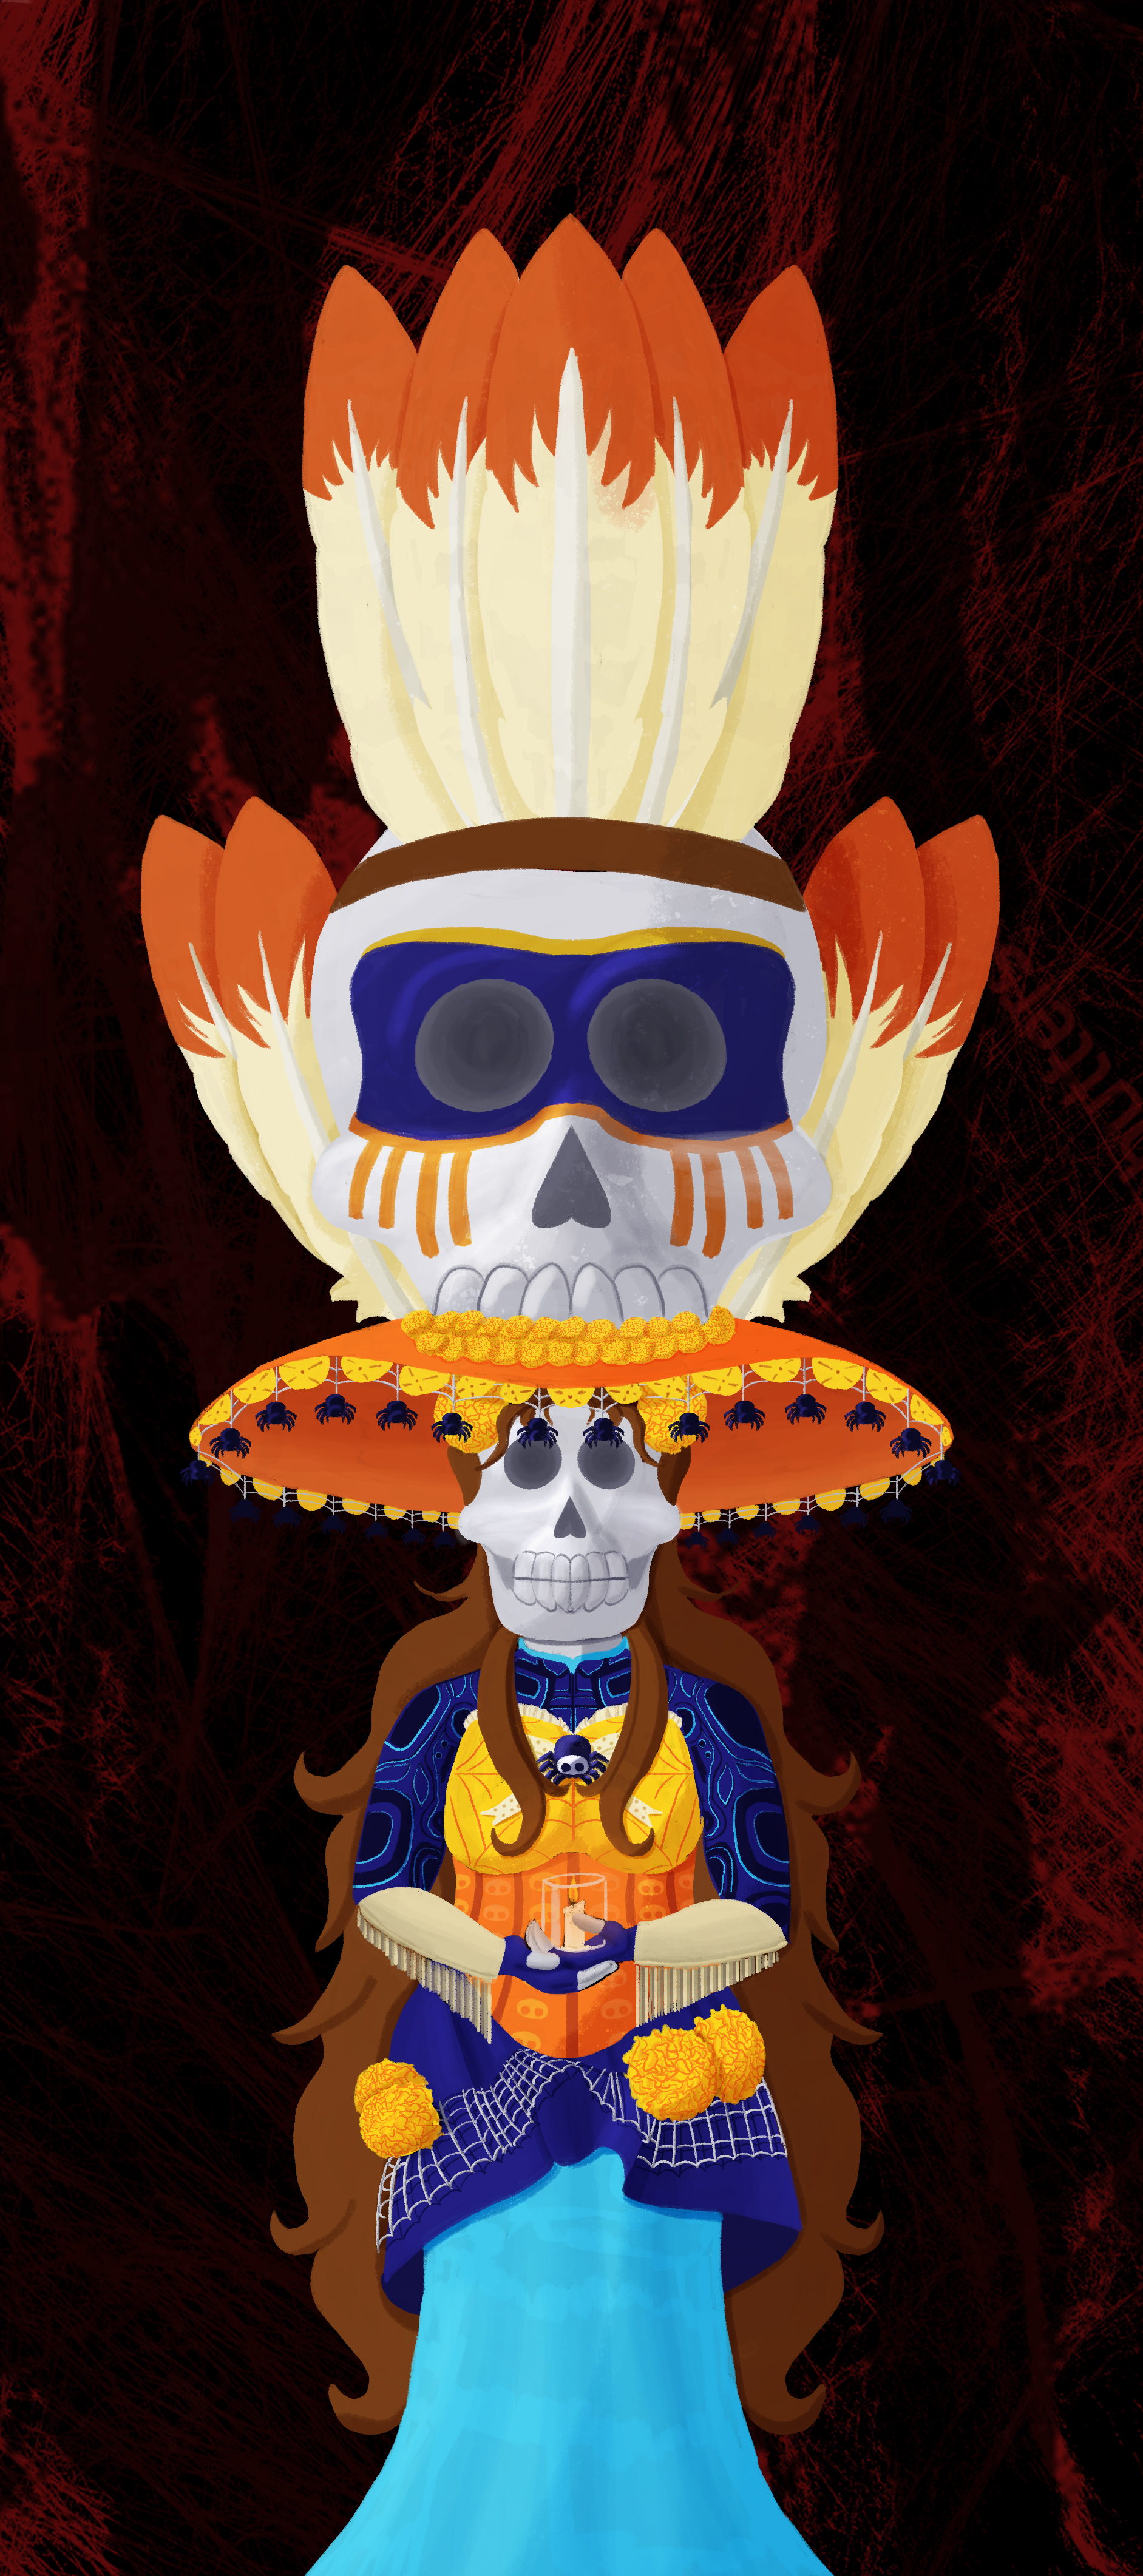 Day of the dead totem3.jpg